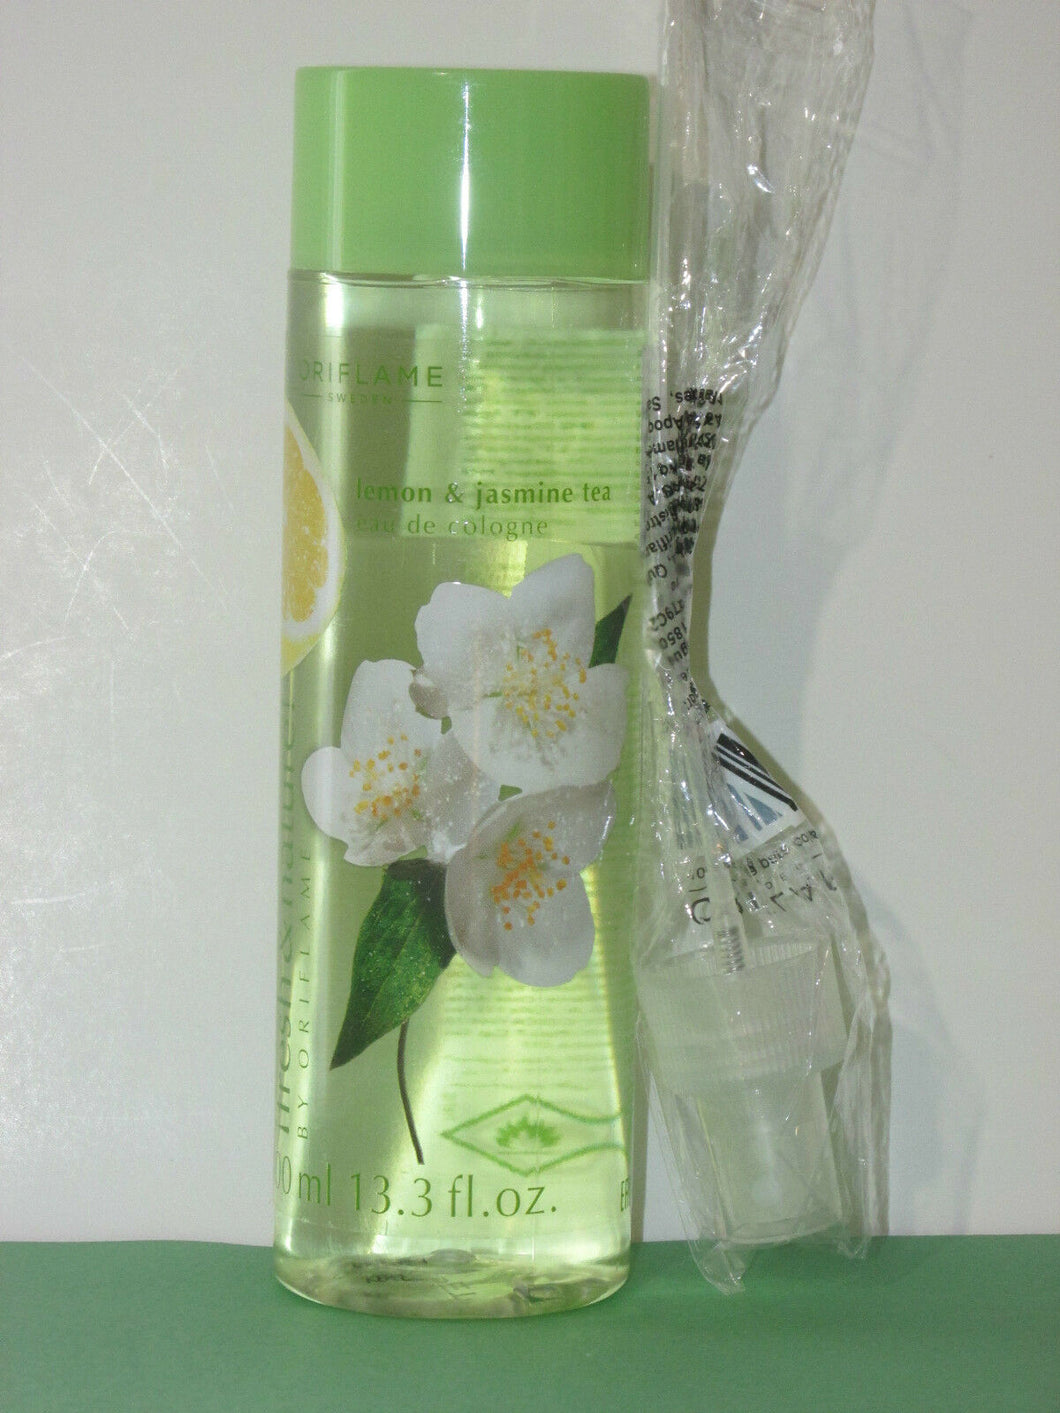 ORIFLAME SWEDEN FRESH & NATURE! LEMON & JASMINE EDC SPRAY 400 ml. NEW!